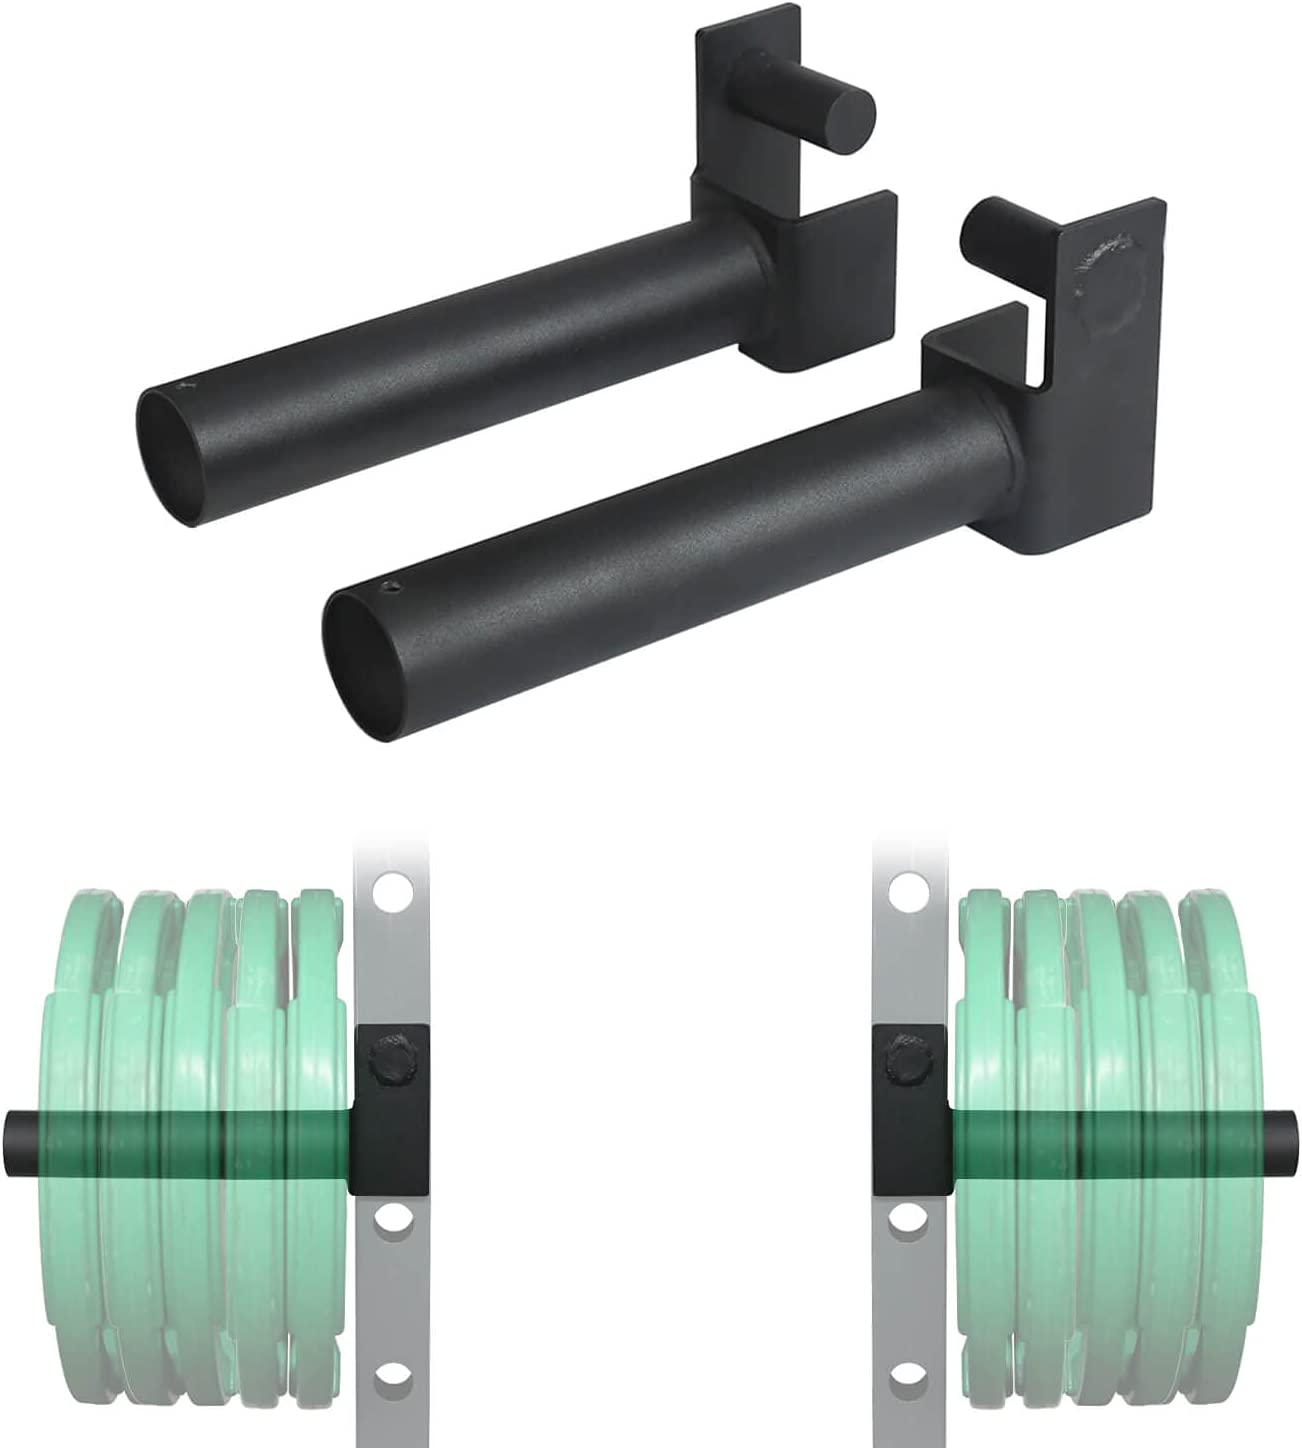 """Weight Plate Holder Power Rack Attachment Fit 2""""x2"""" Tube,Weights Storage Rack : Sports & Outdoors"""